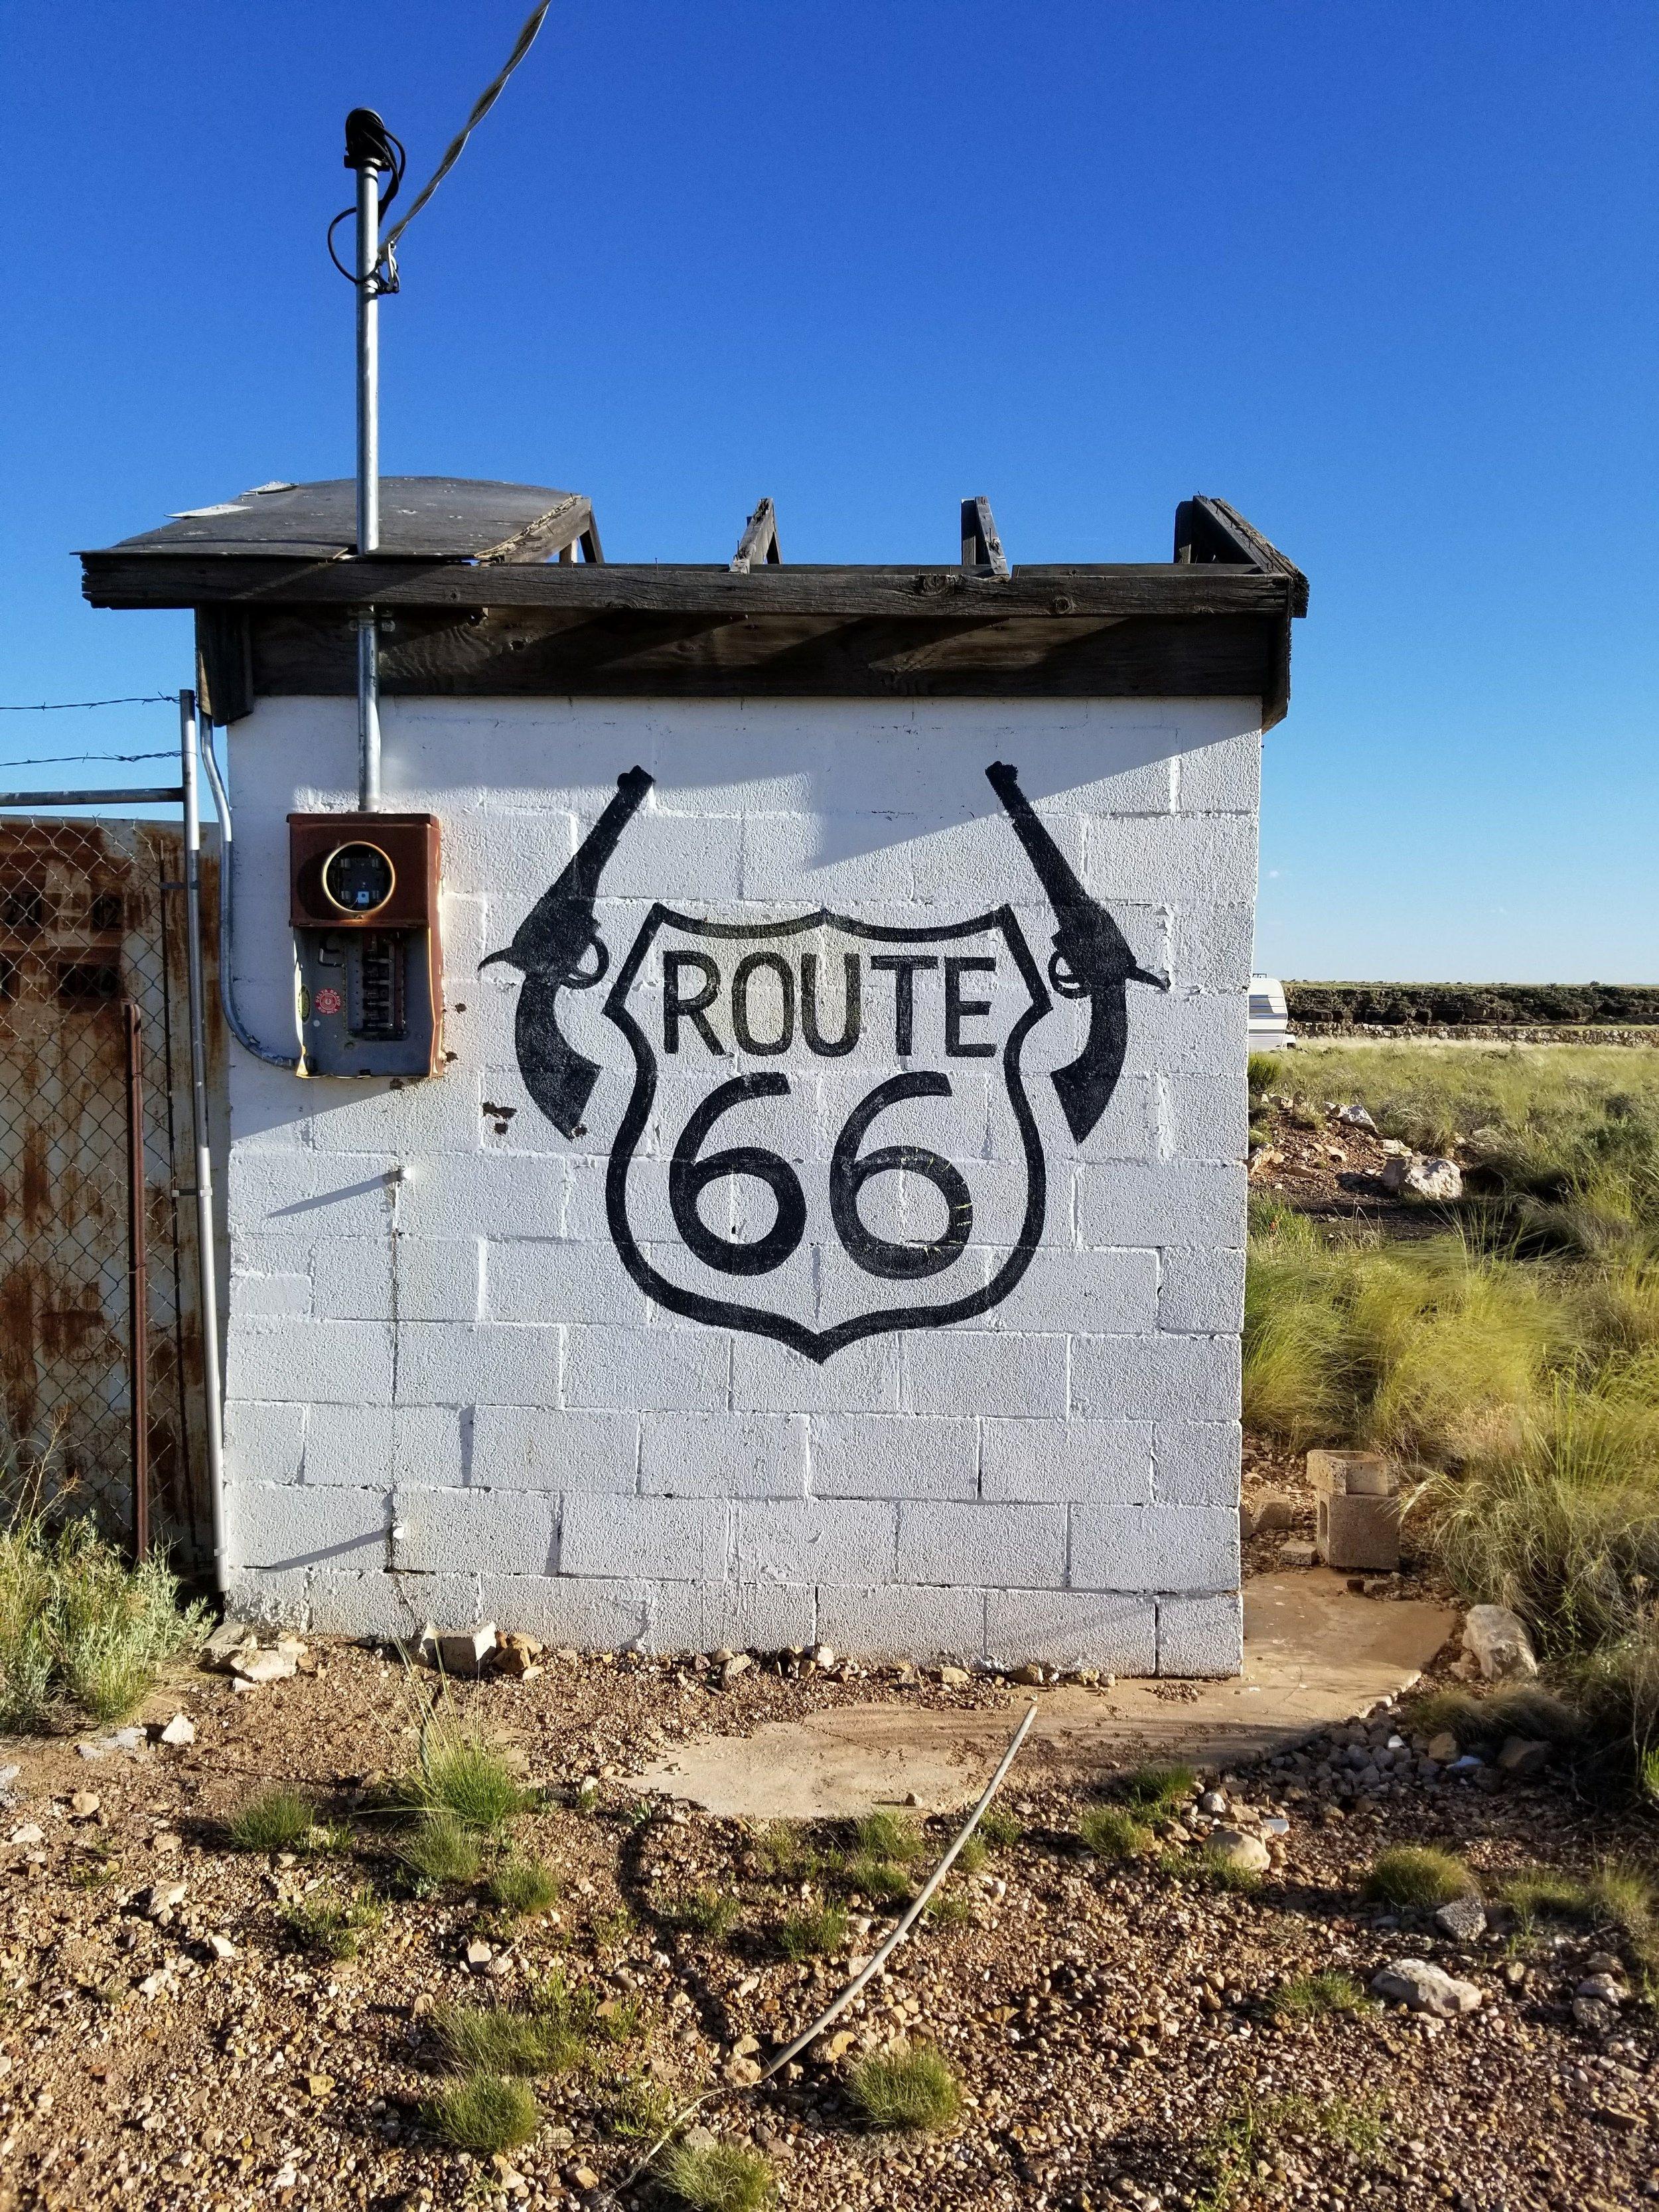 Wonder if there are any ghost in this ghost town?